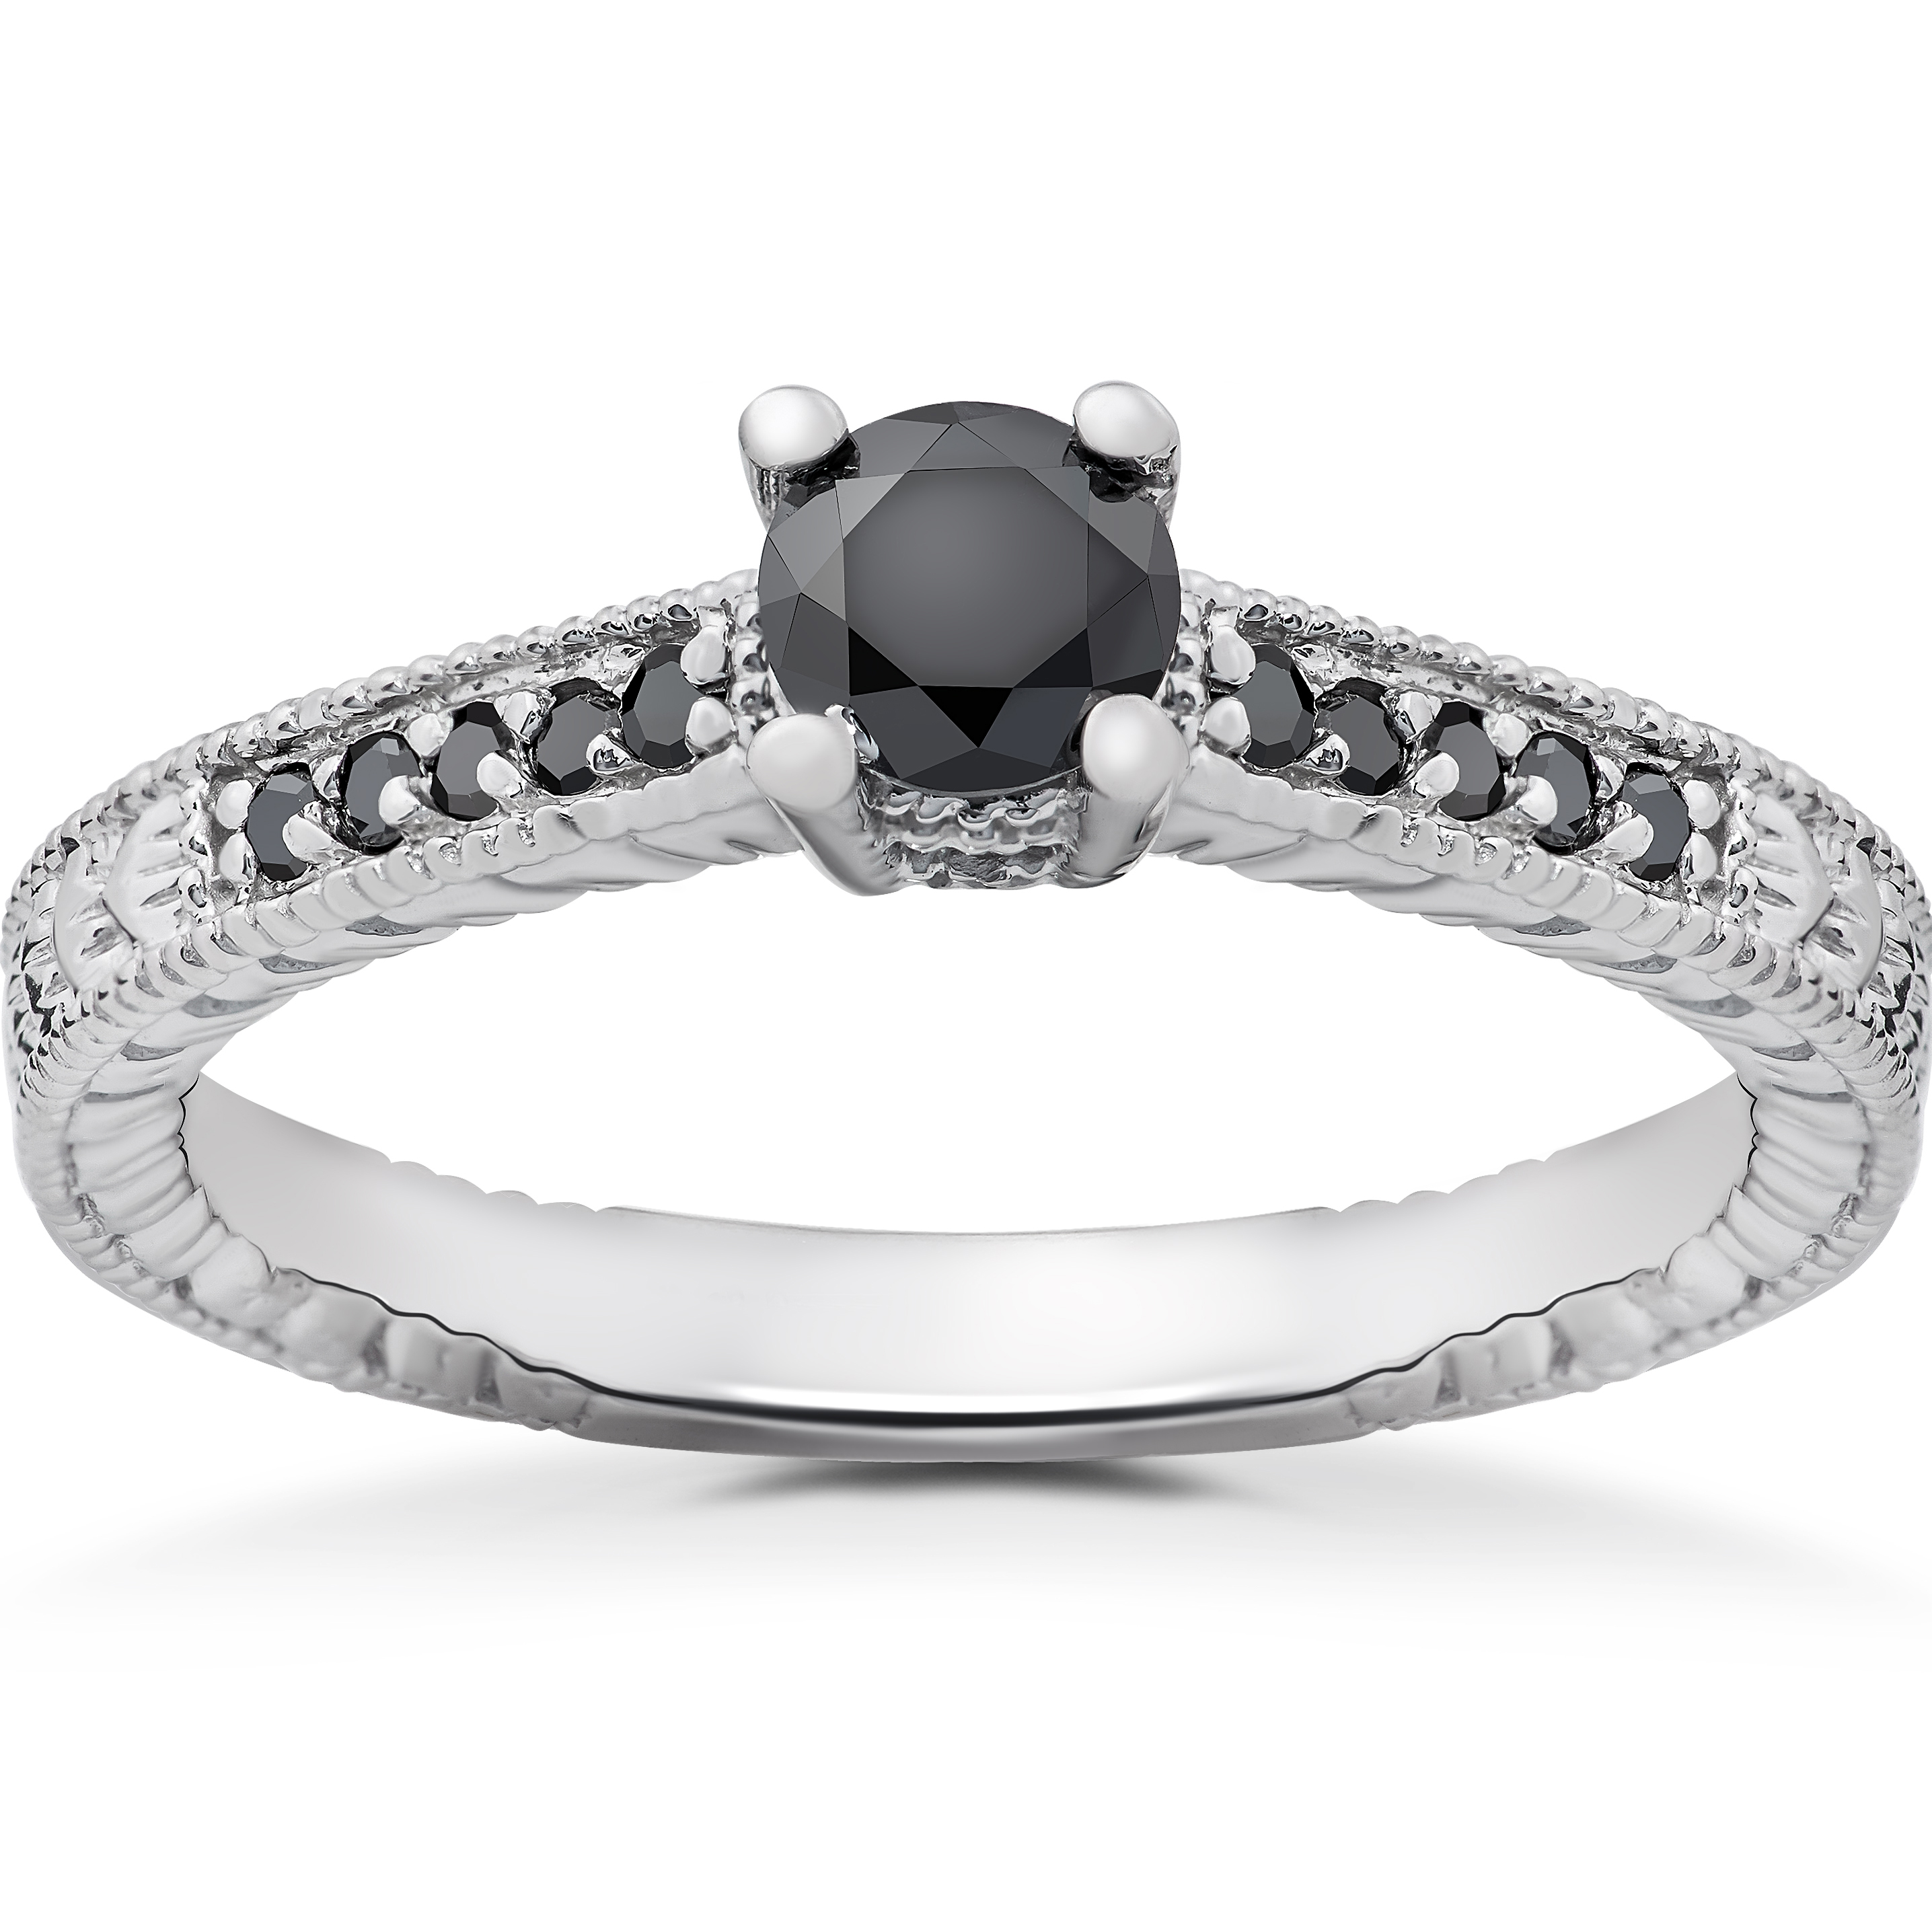 1 2 ct Black Diamond Vintage Engagement Ring 14k White Gold